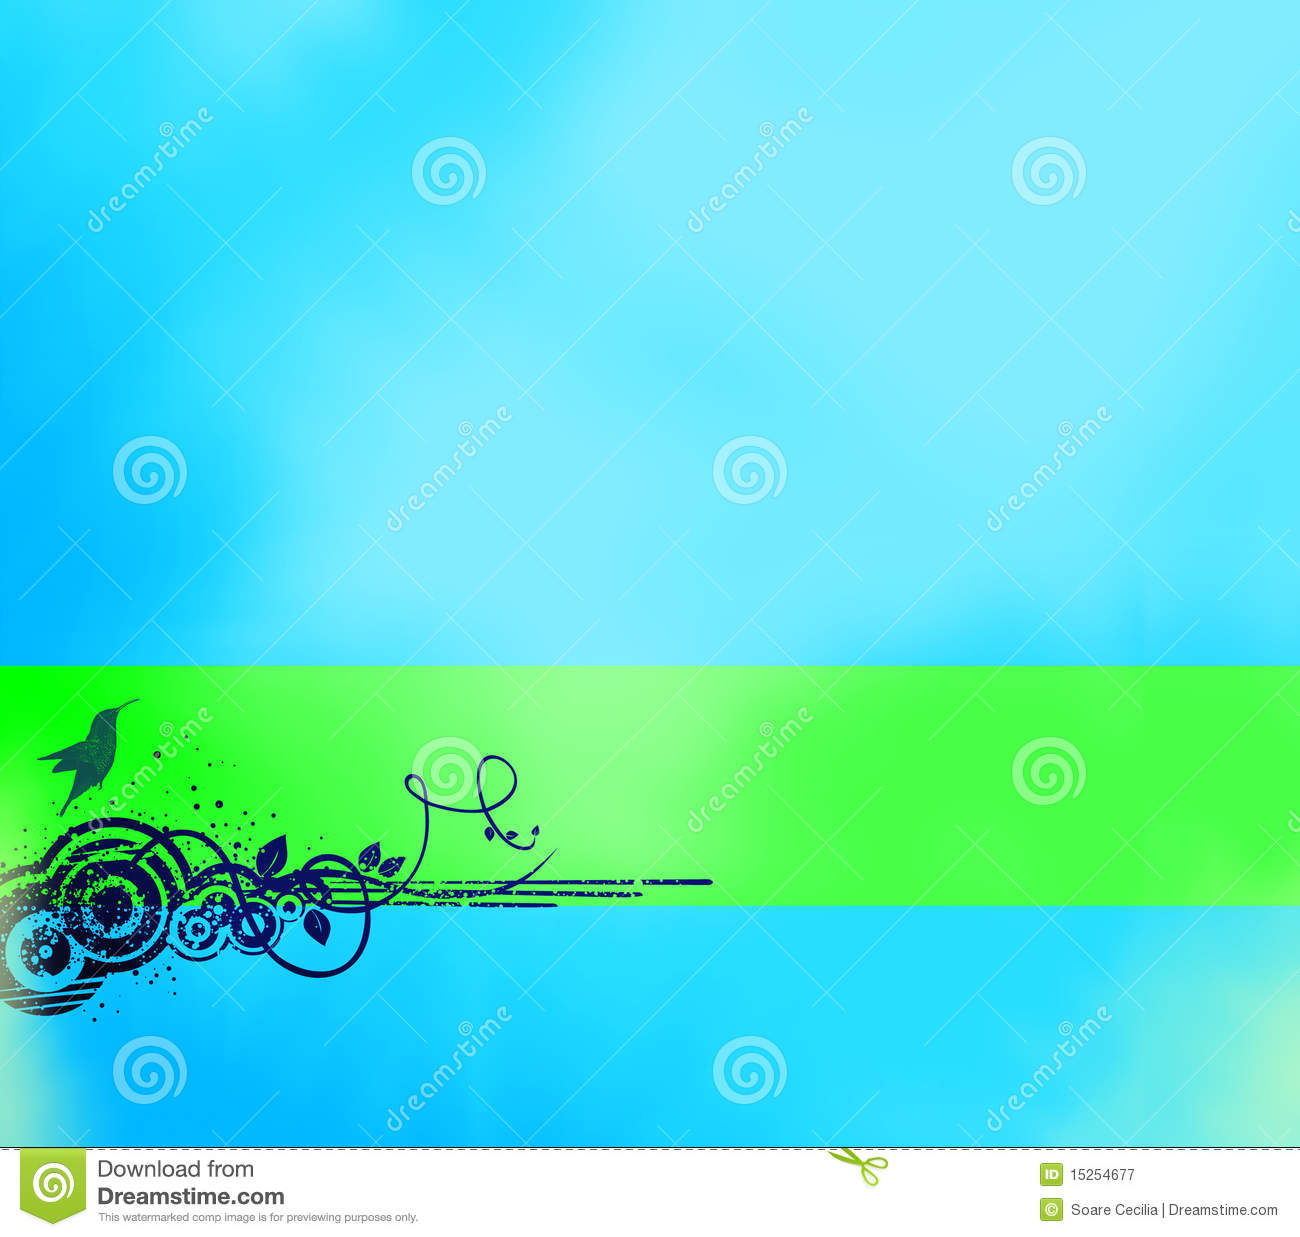 Royalty Free Stock Photo Download Abstract Blue Background With Banner